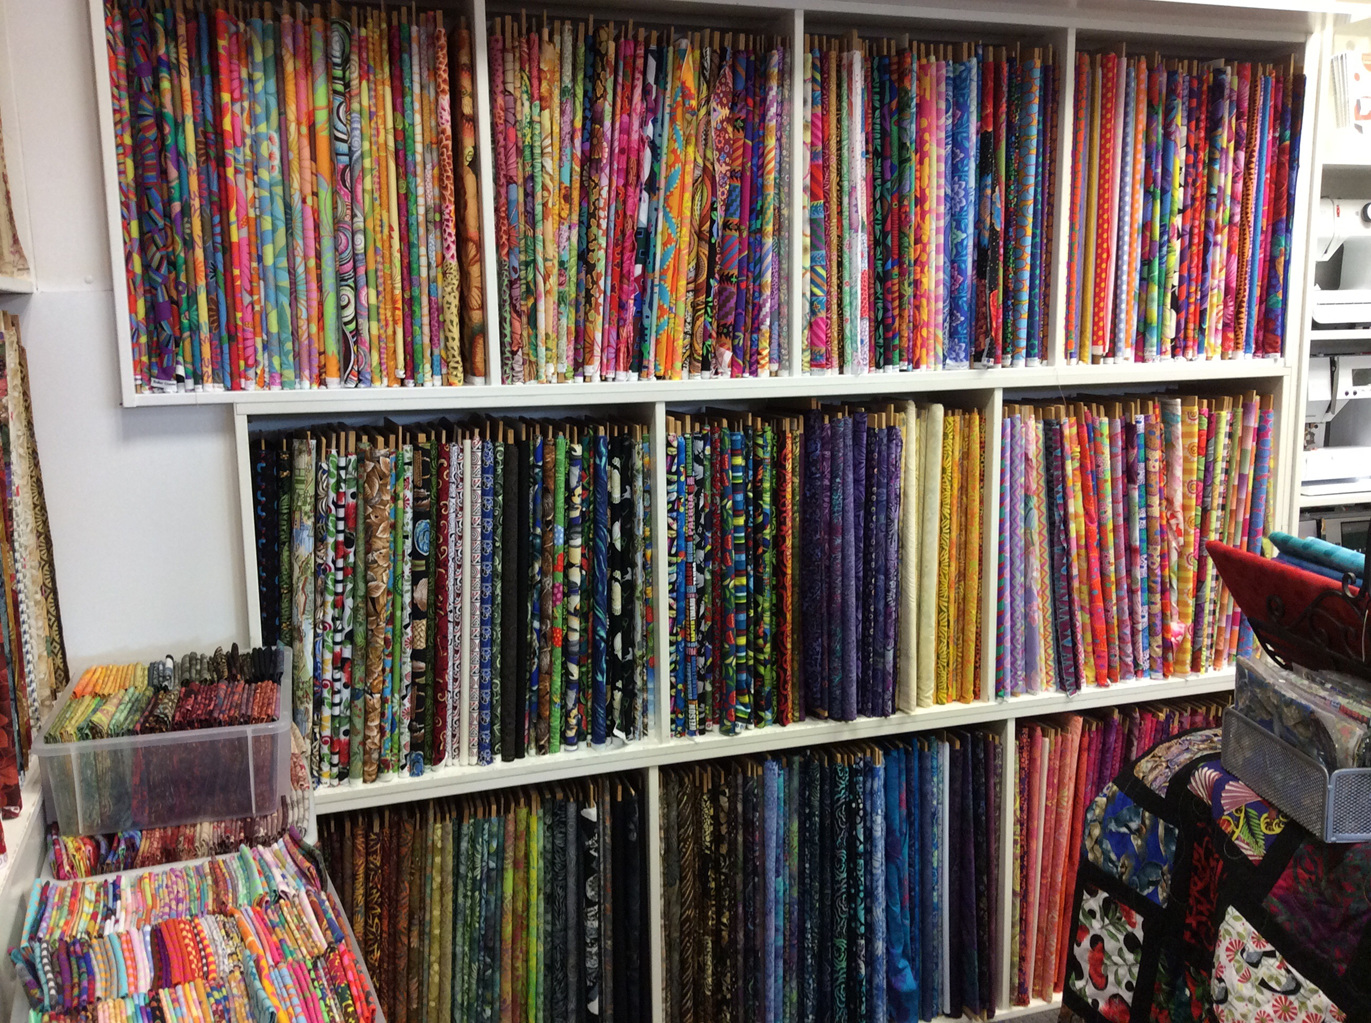 Kaffe Fassett, New Zealand and Batik fabrics